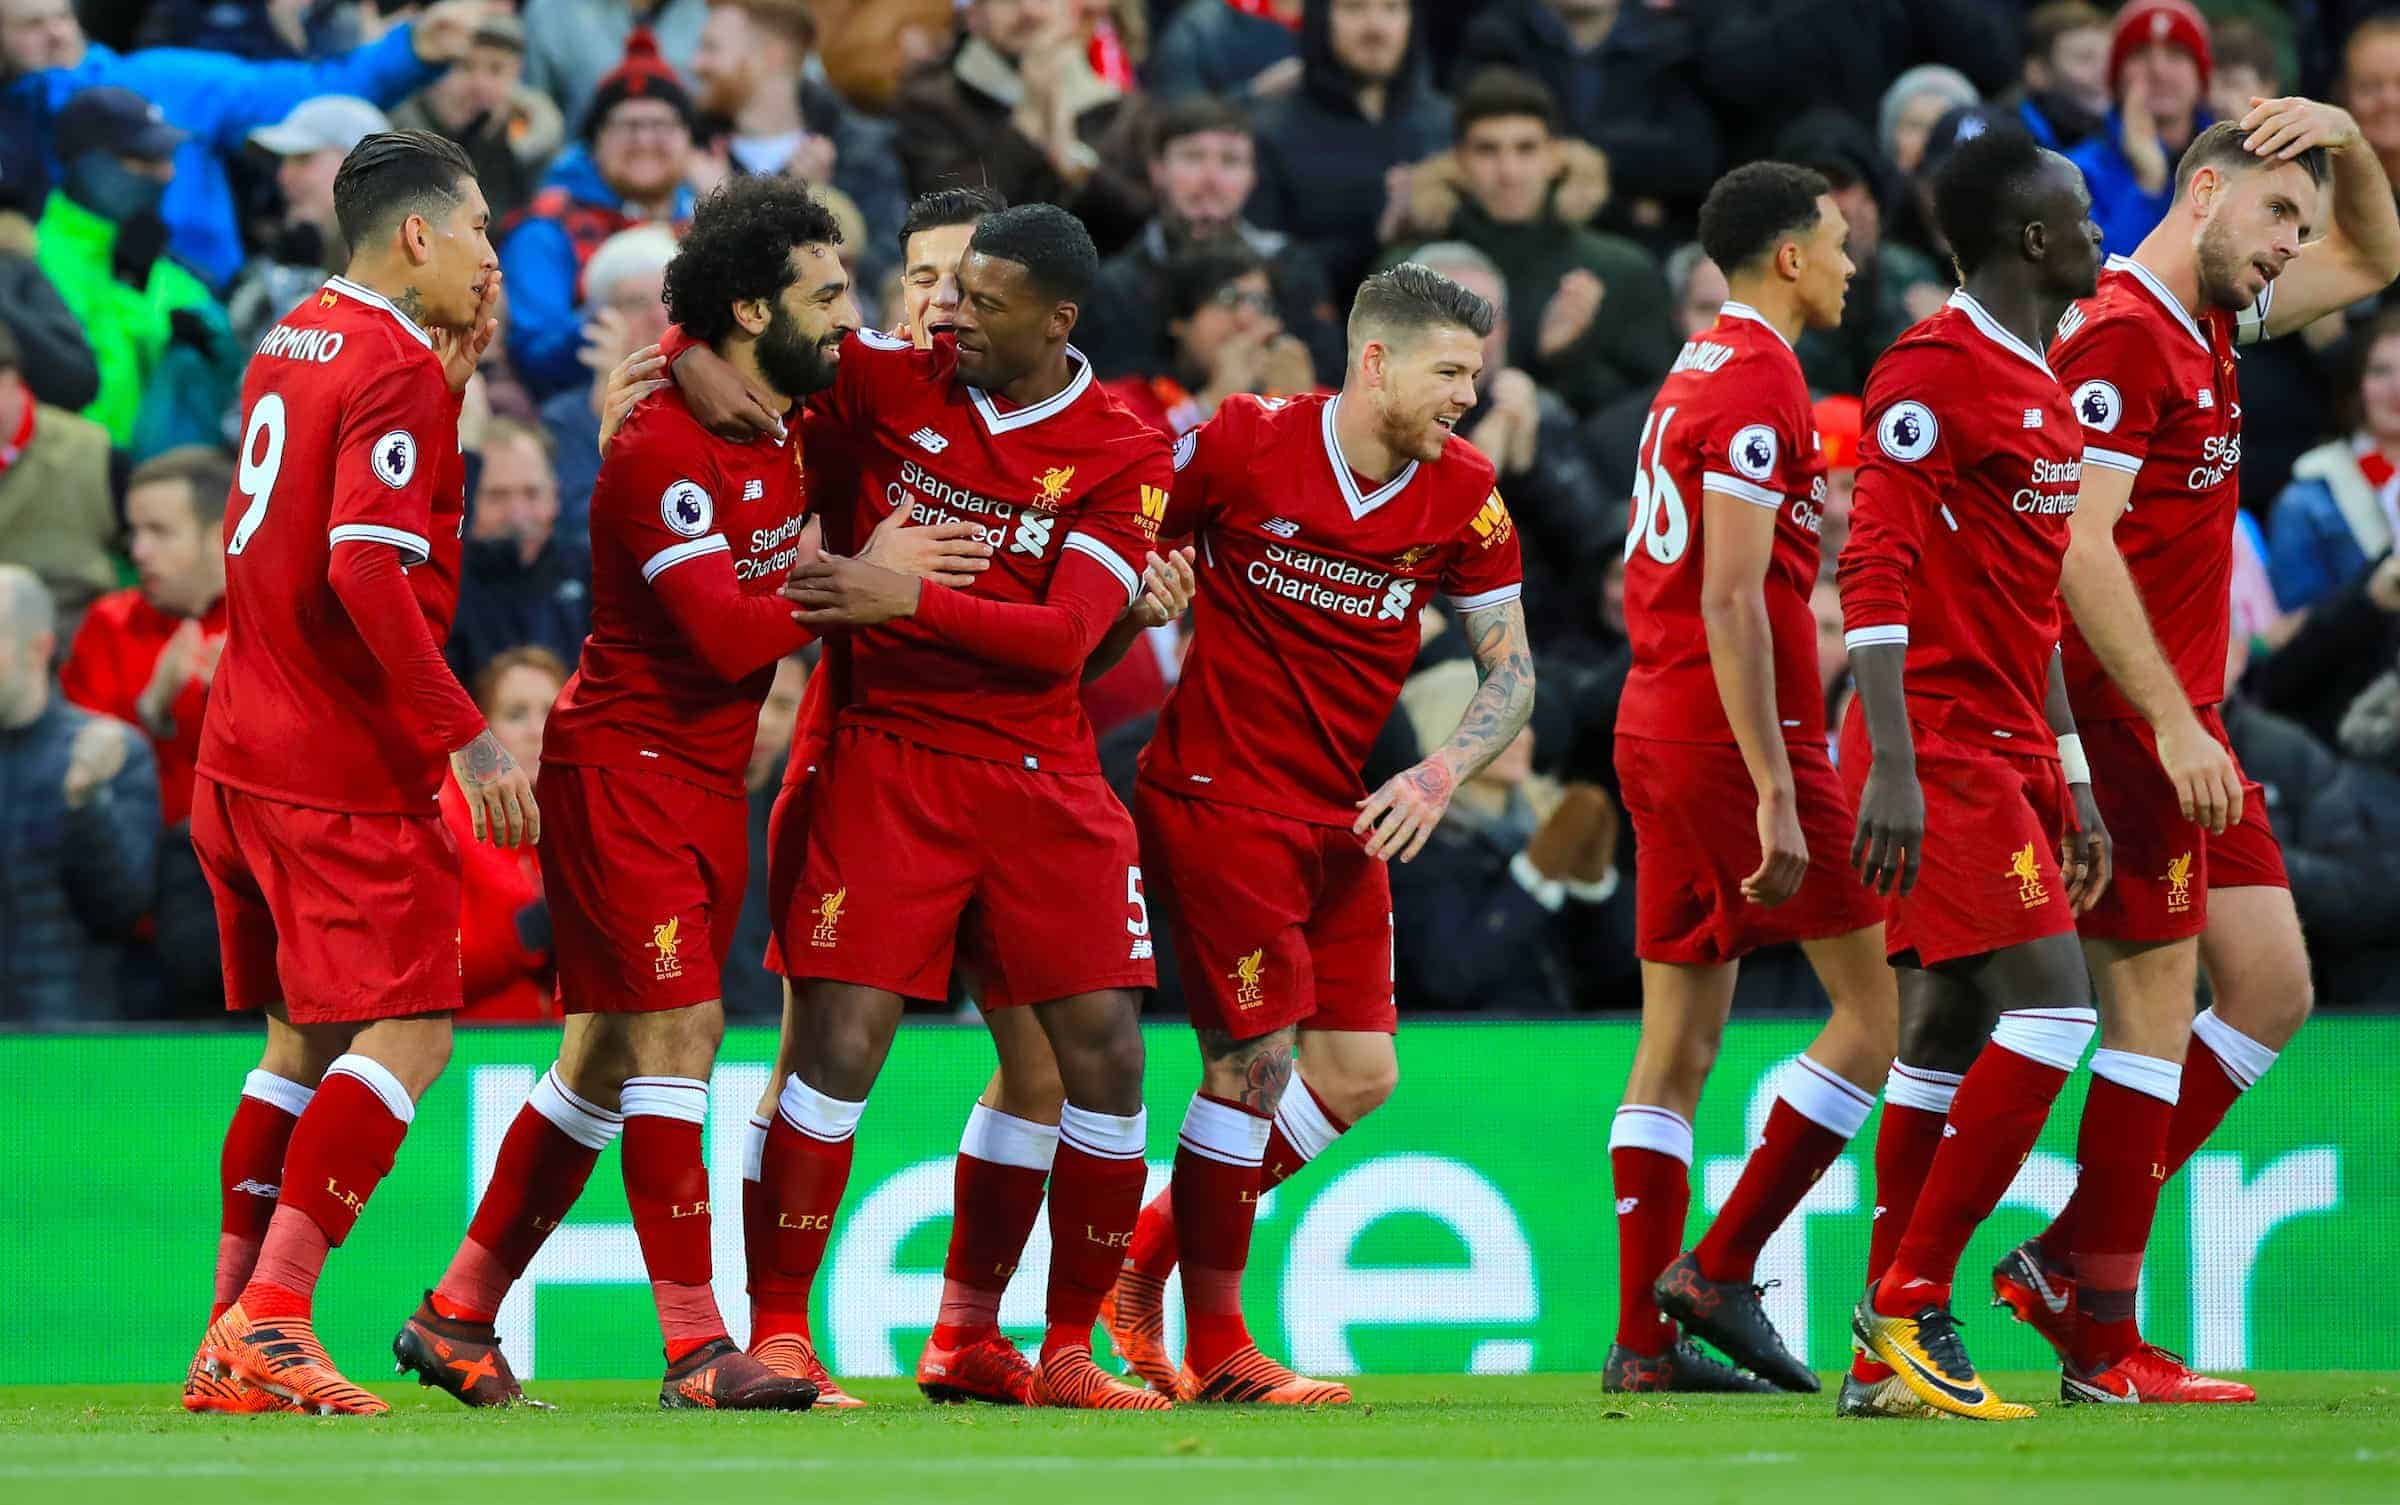 Liverpool's Mohamed Salah celebrates scoring his side's first goal of the game with team mates during the Premier League match at Anfield, Liverpool. (Peter Byrne/PA Wire.)